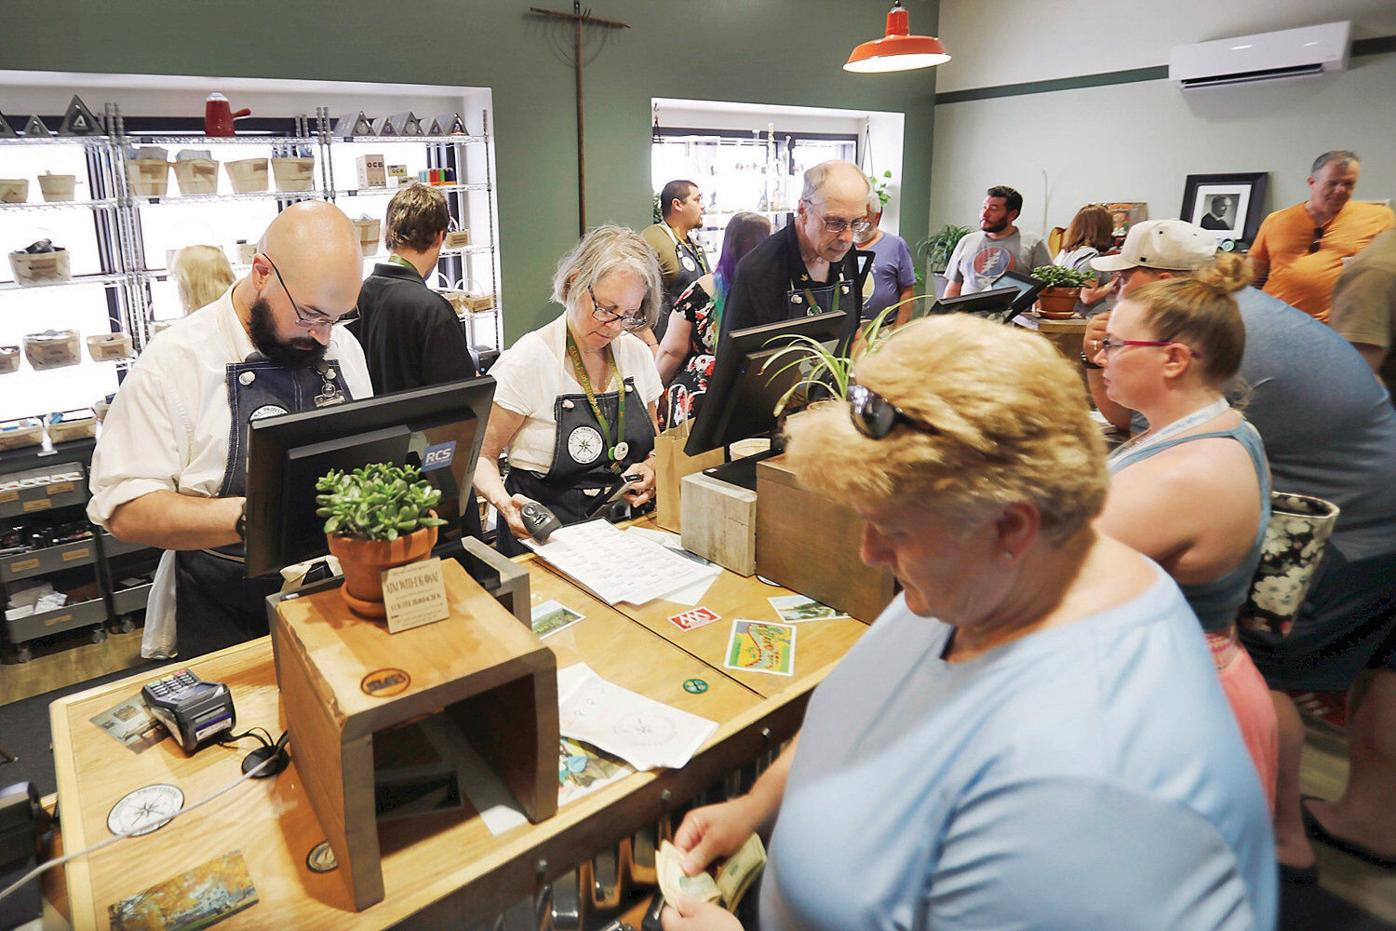 Lee's first recreational pot shop opens, offering customers an 'intimate experience'